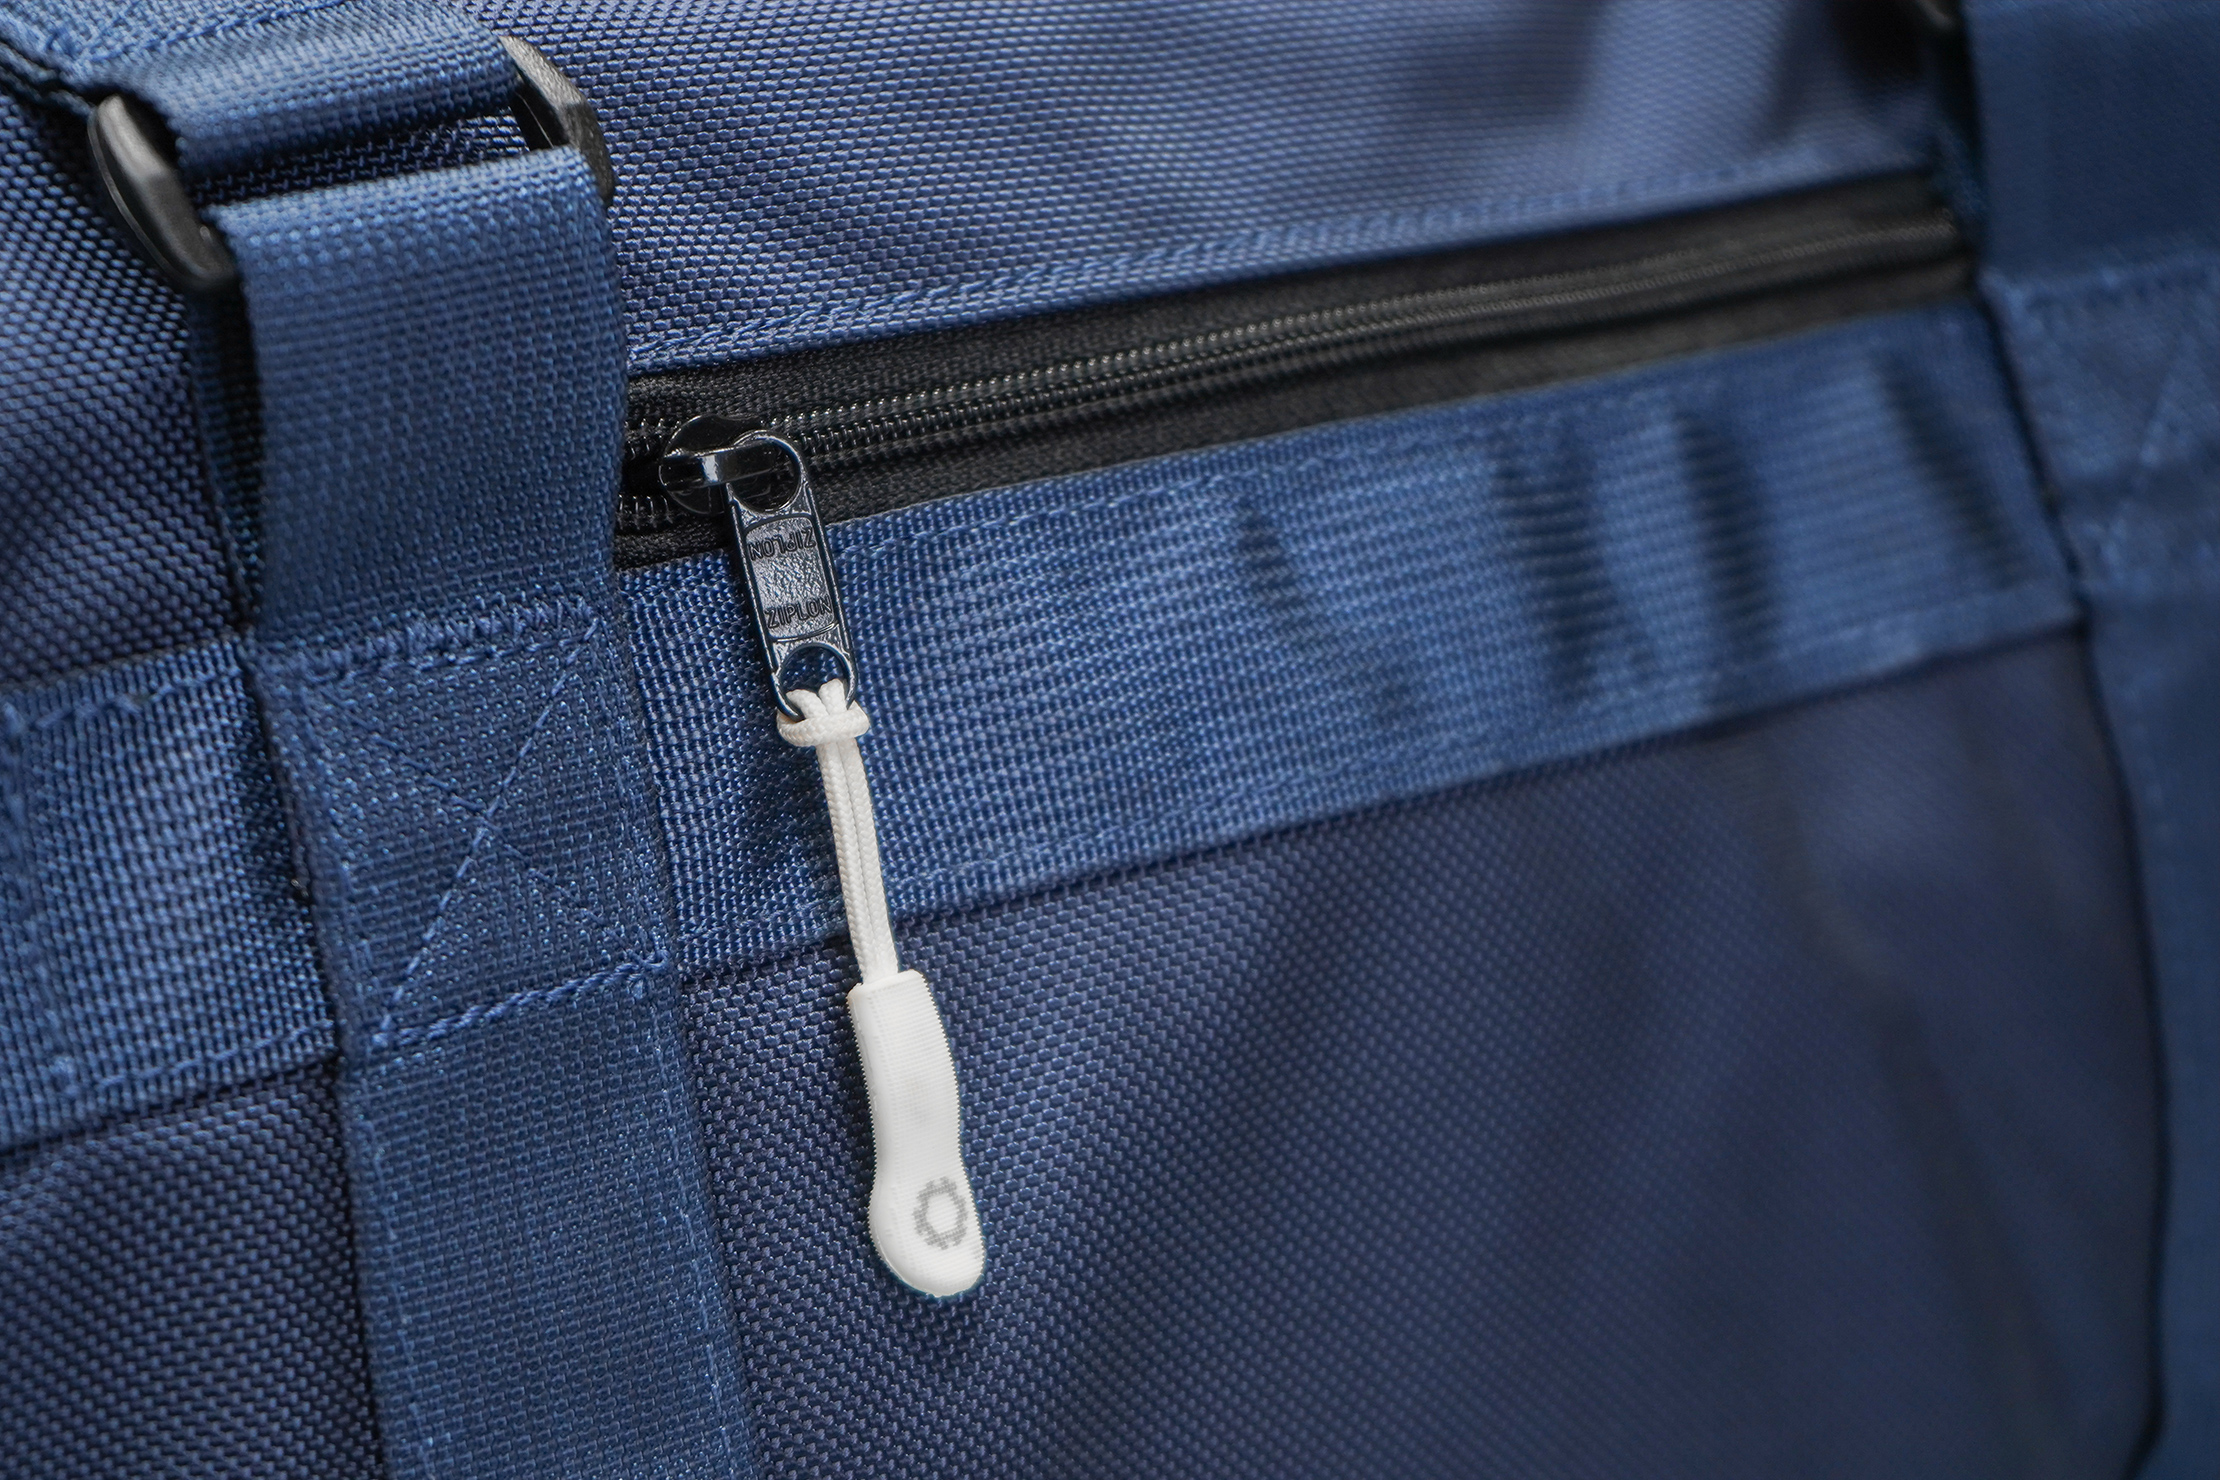 DSPTCH Utility Tote | The white zipper pull serves as a nice accent piece for the blue colorway